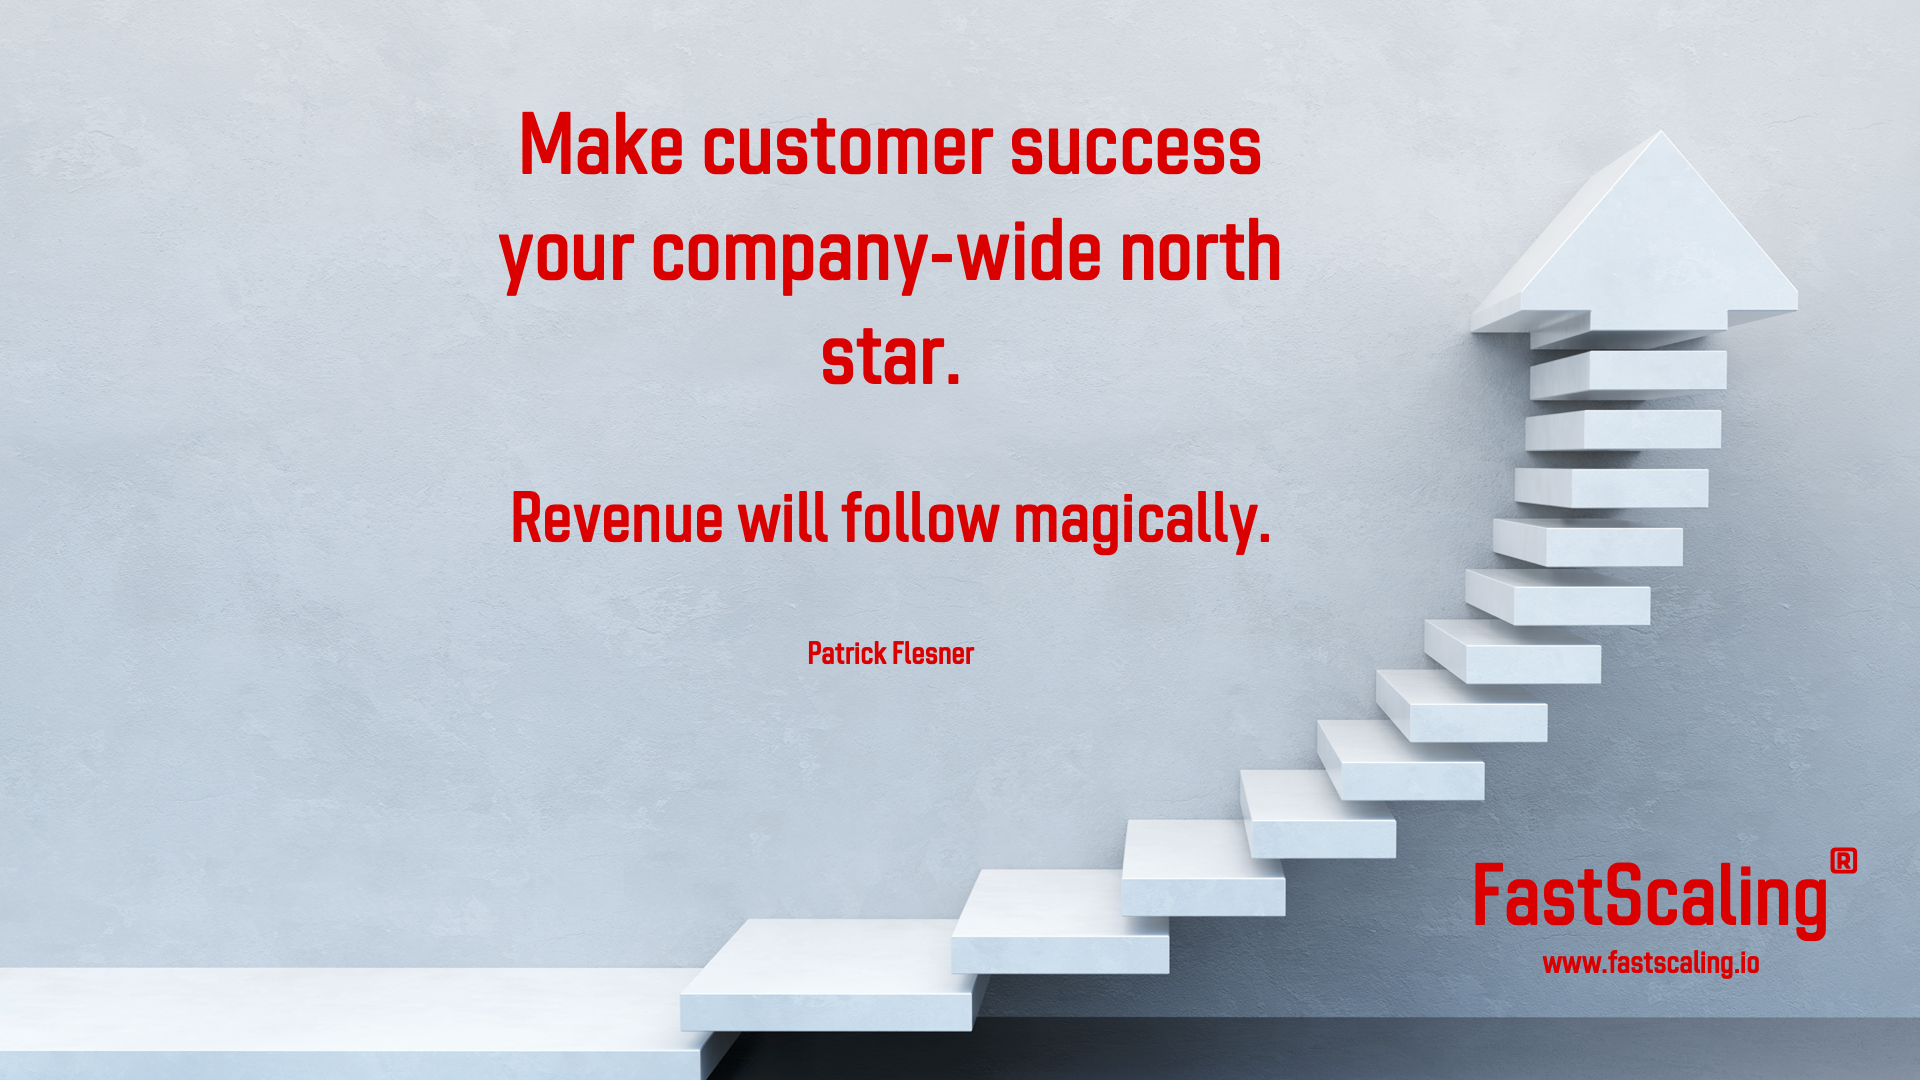 Customer Success - Your Company-wide North Star